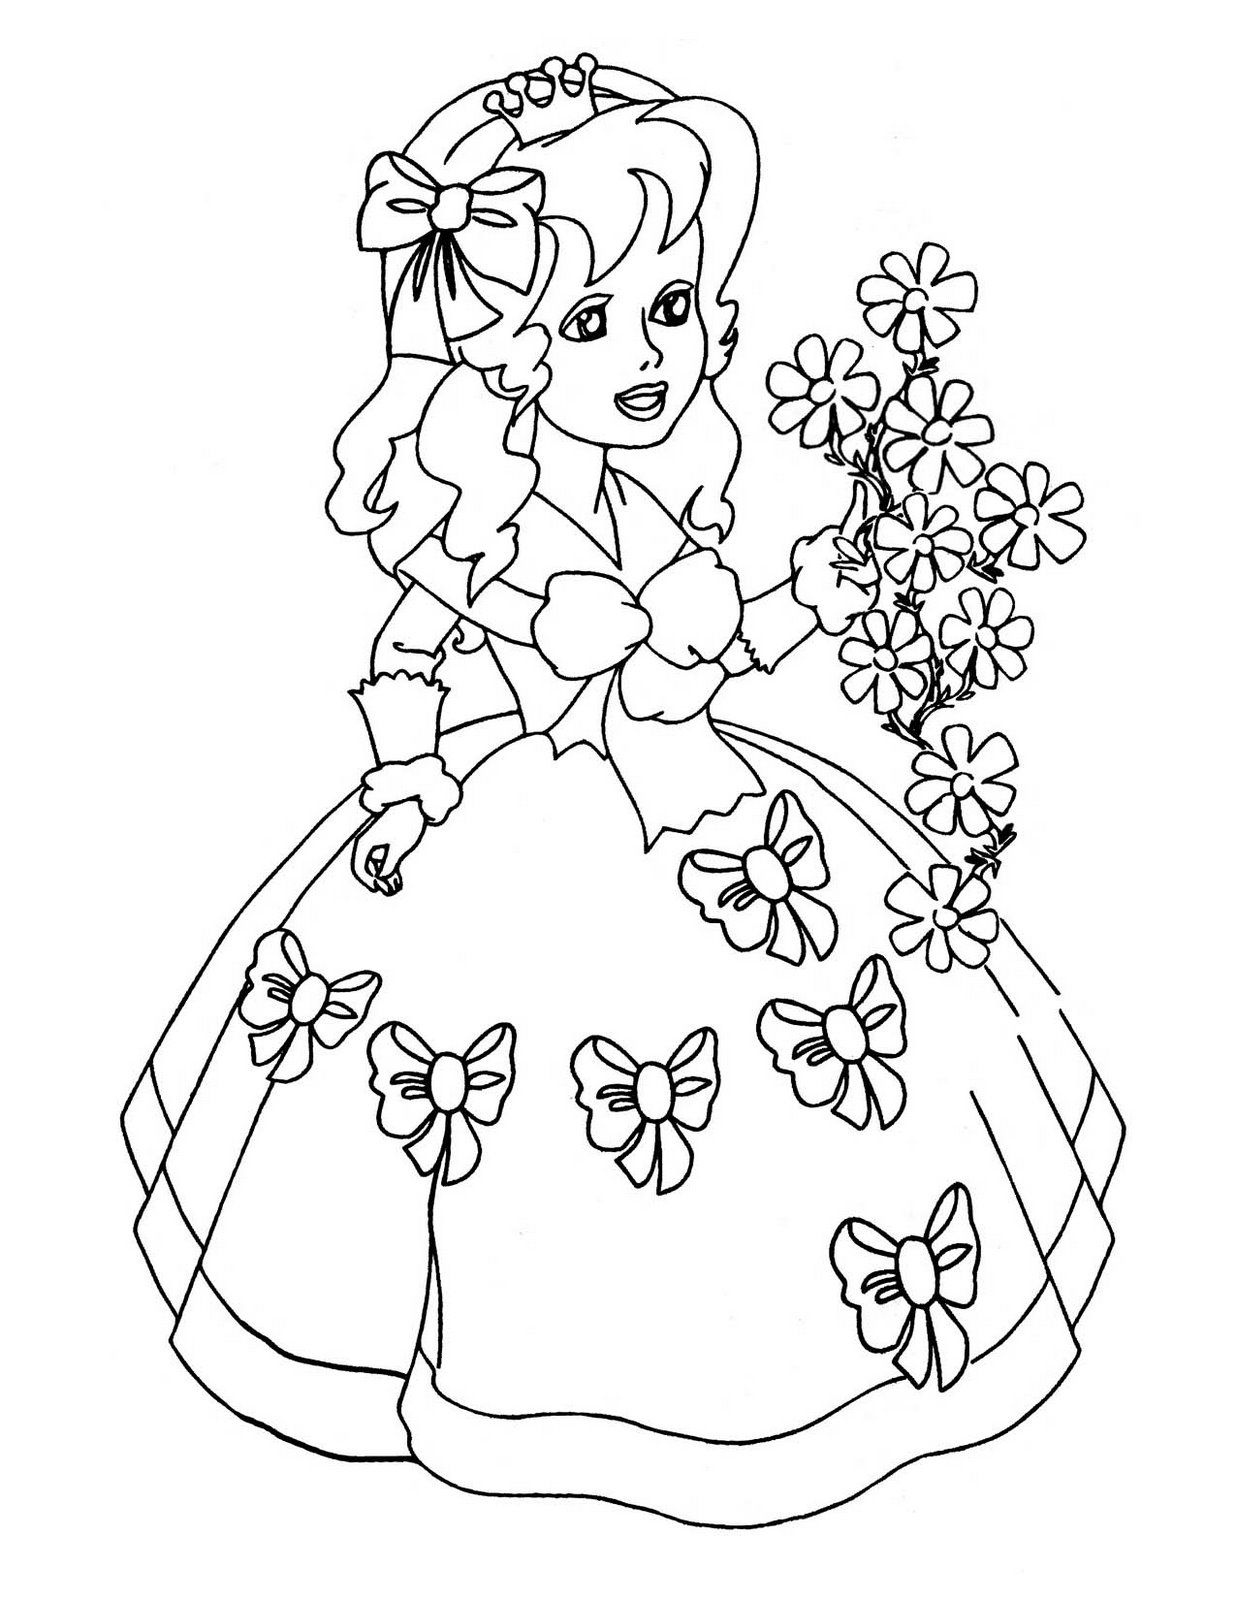 colouring Coloring pages, Coloring pages for girls